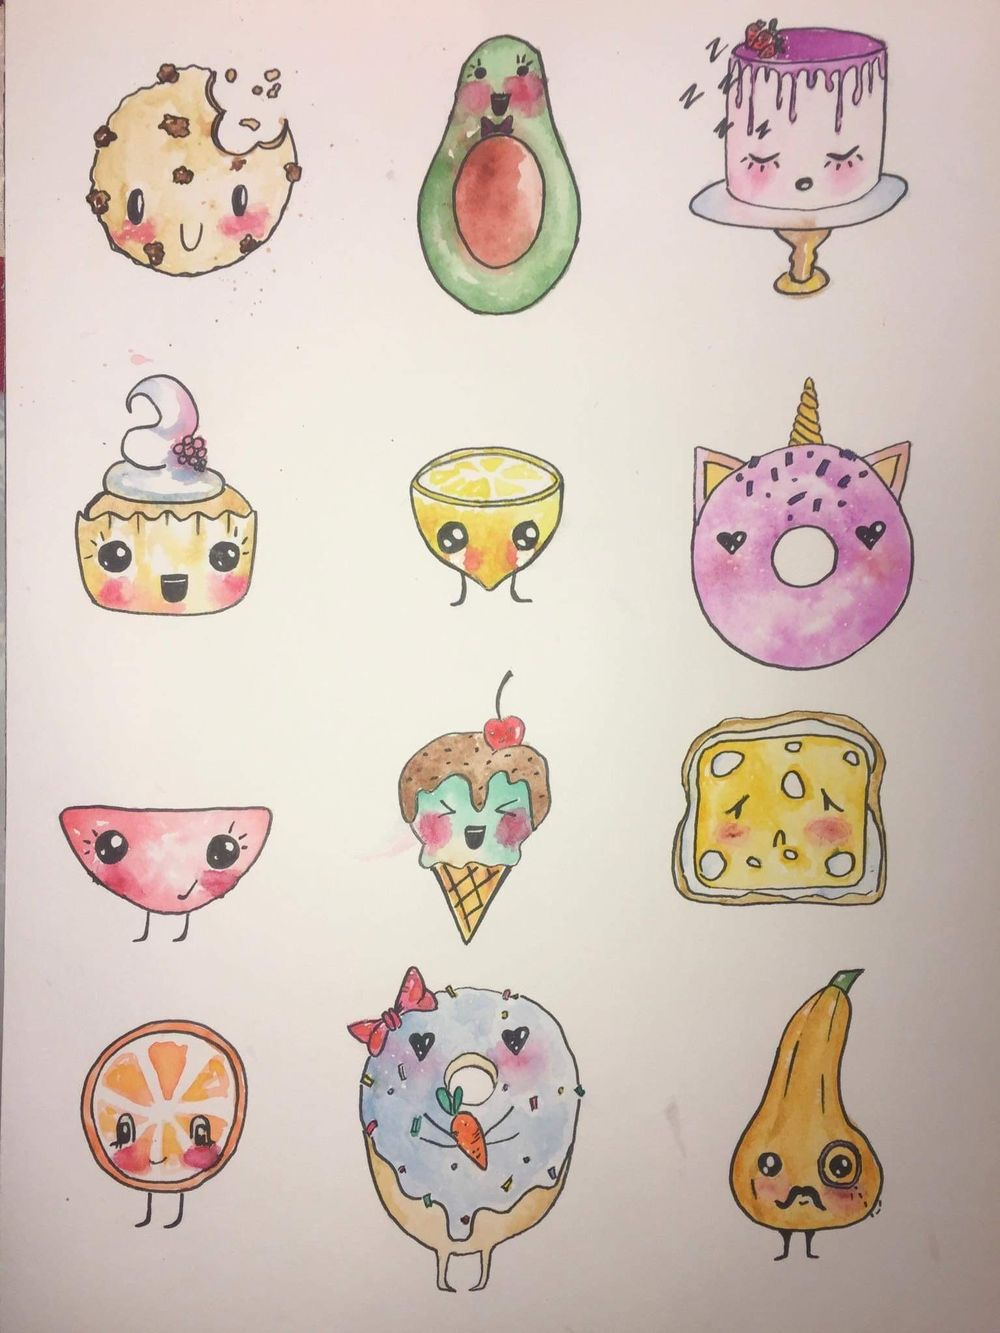 Cutie foodie - image 1 - student project